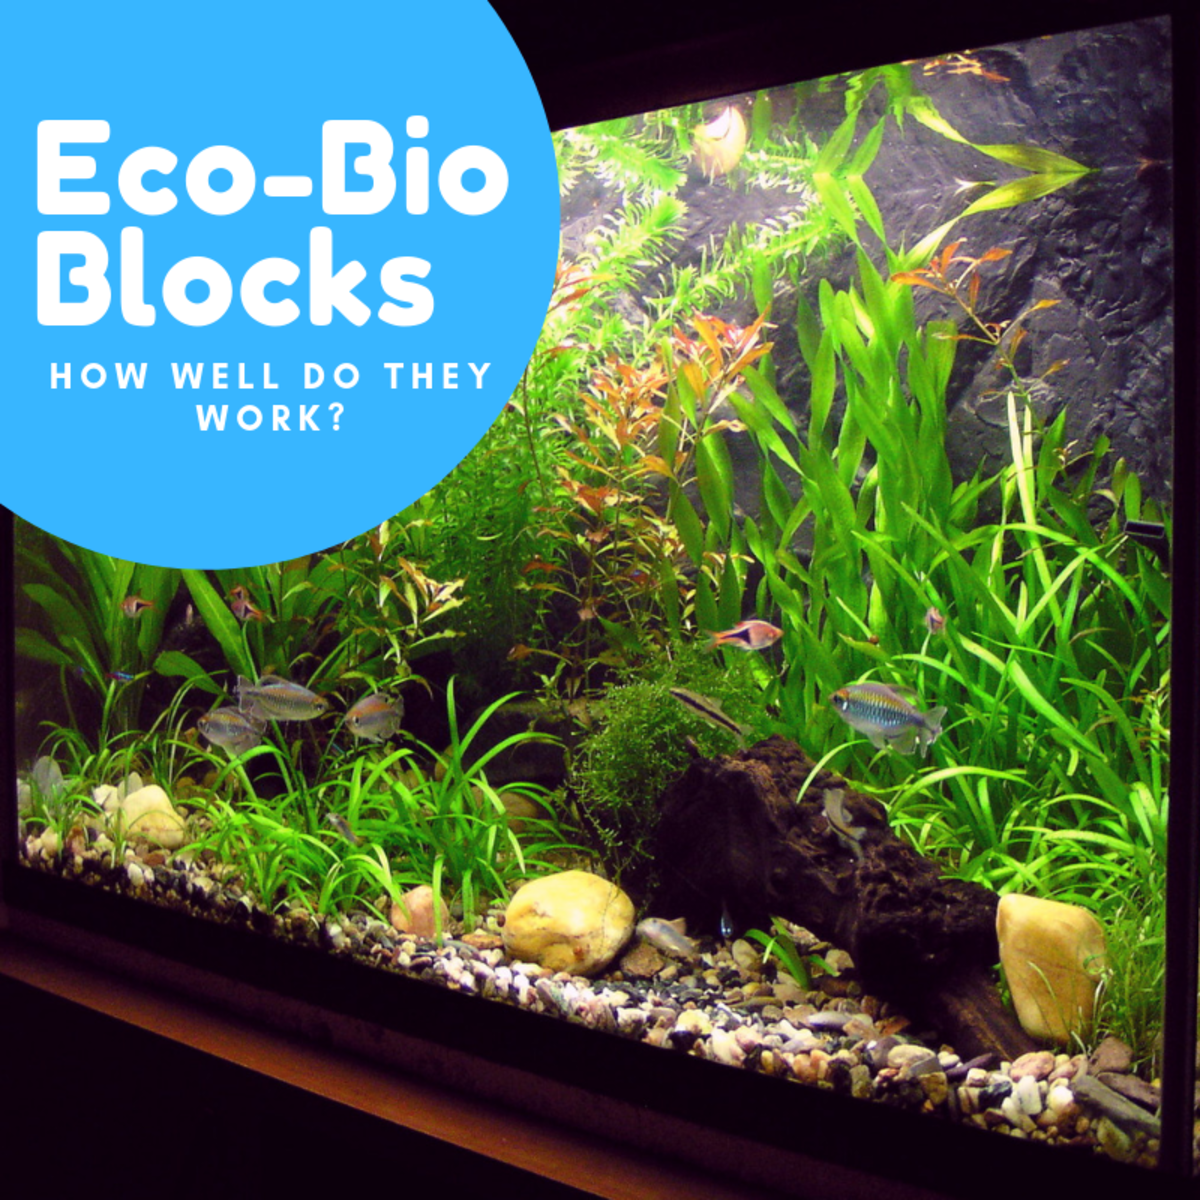 Eco-Bio Blocks aren't cheap, but they can save you a bundle in time and effort.